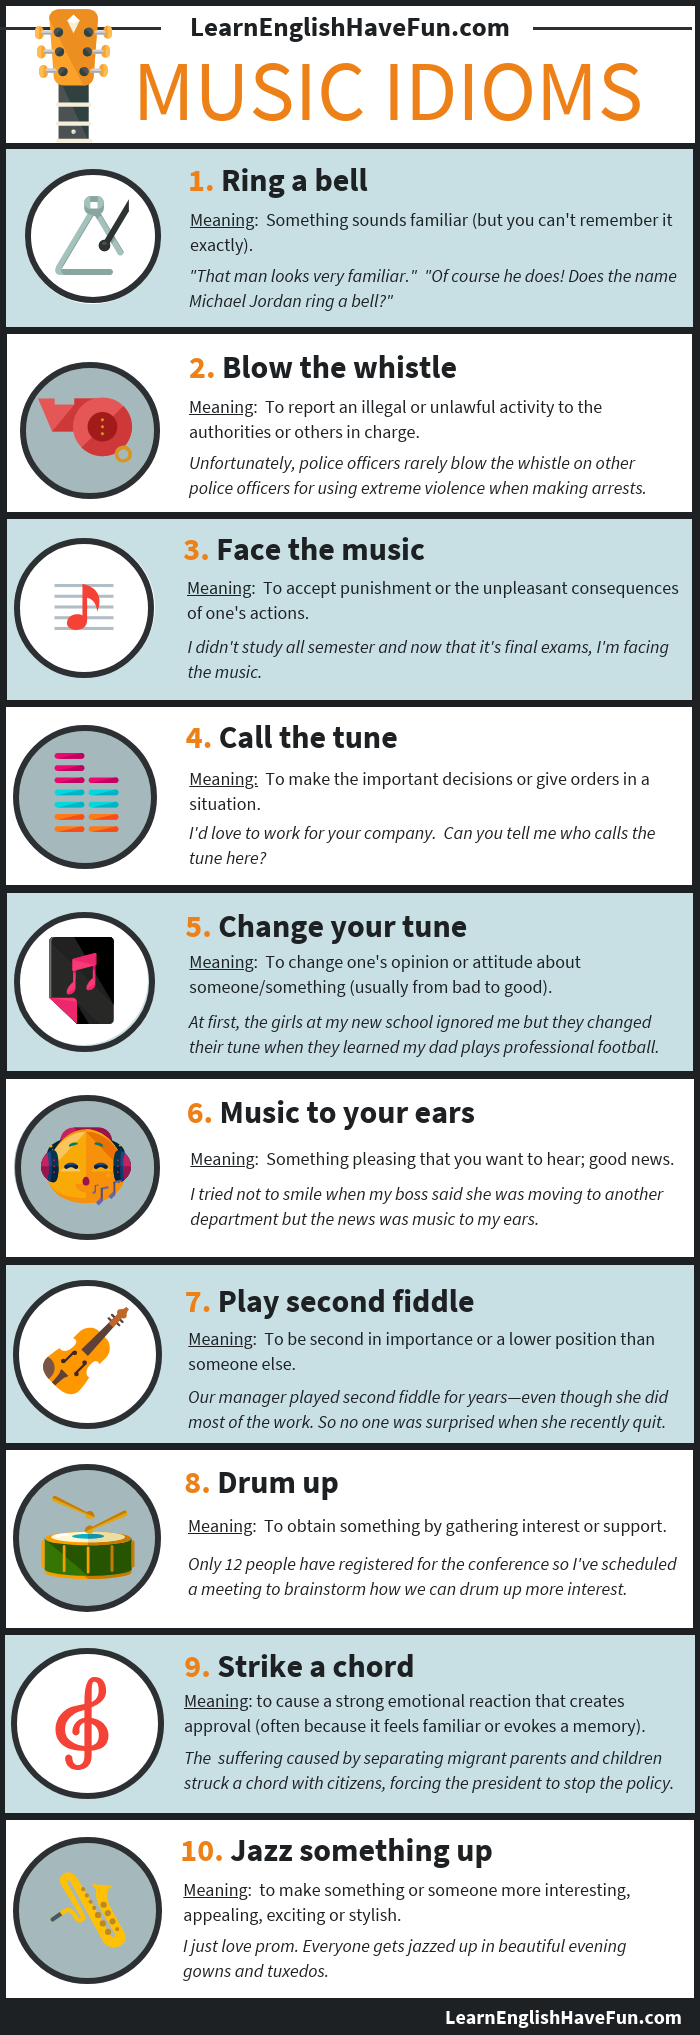 An infographic showing the 10 idioms listed on this webpage with definitions and sentence examples